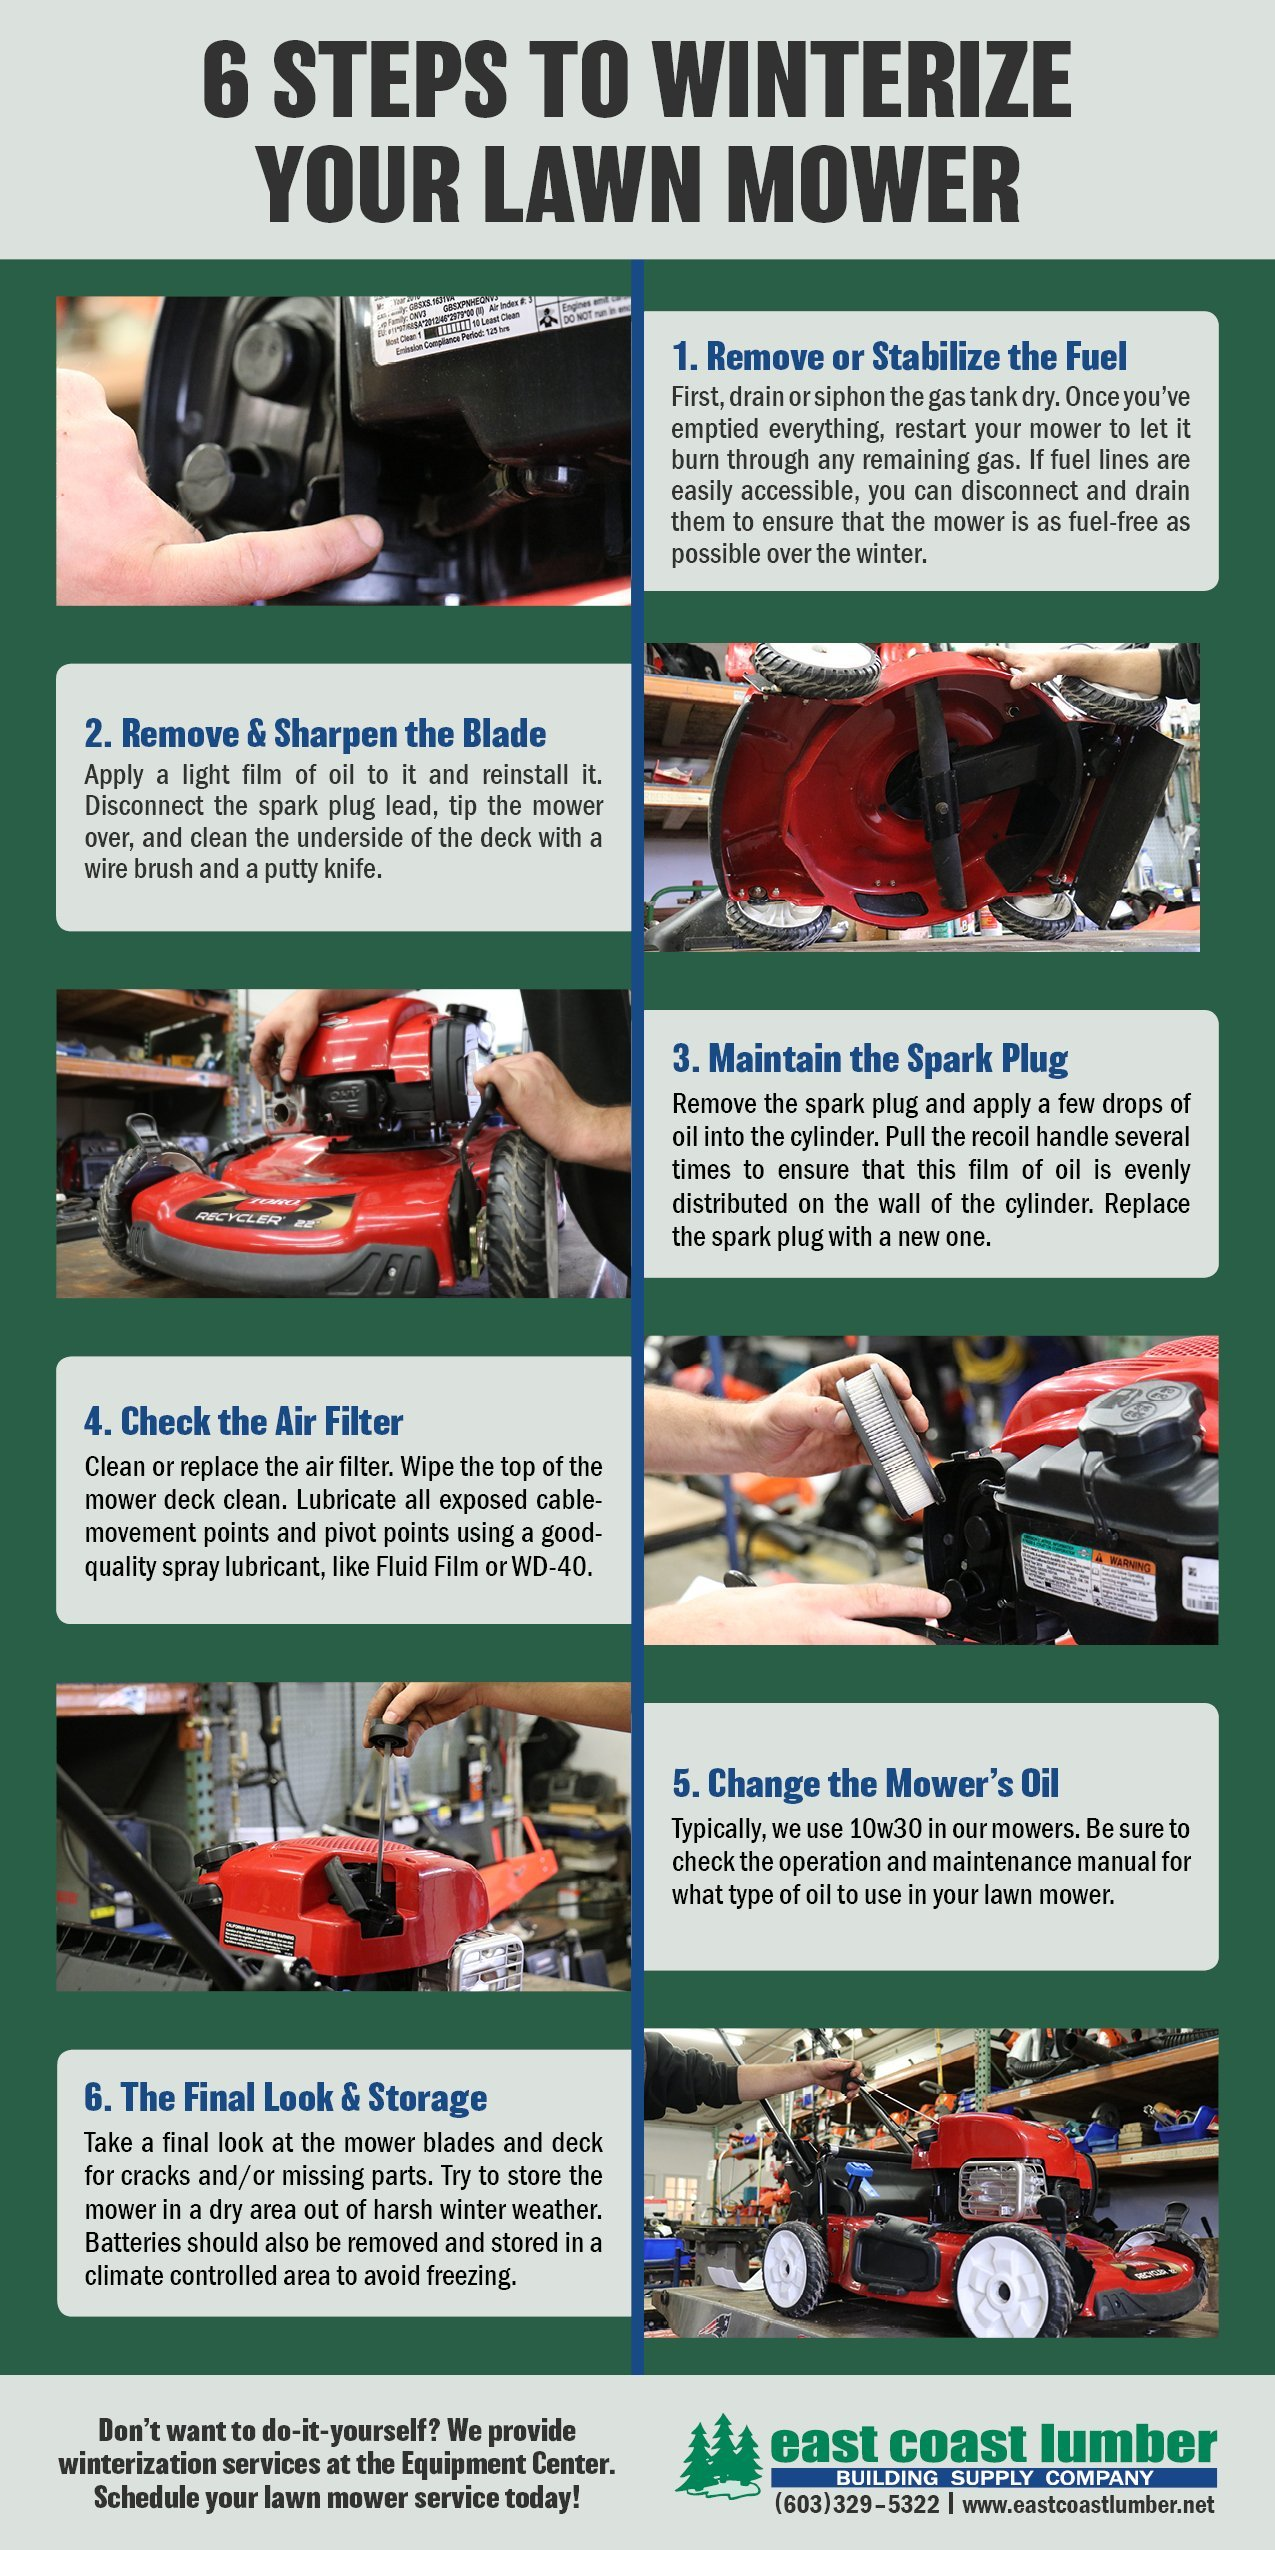 You Can Always Bring Your Lawn Mower Into East Coast Lumber We Provide Winterization Services In Our Equipment Center Take Good Care Of So